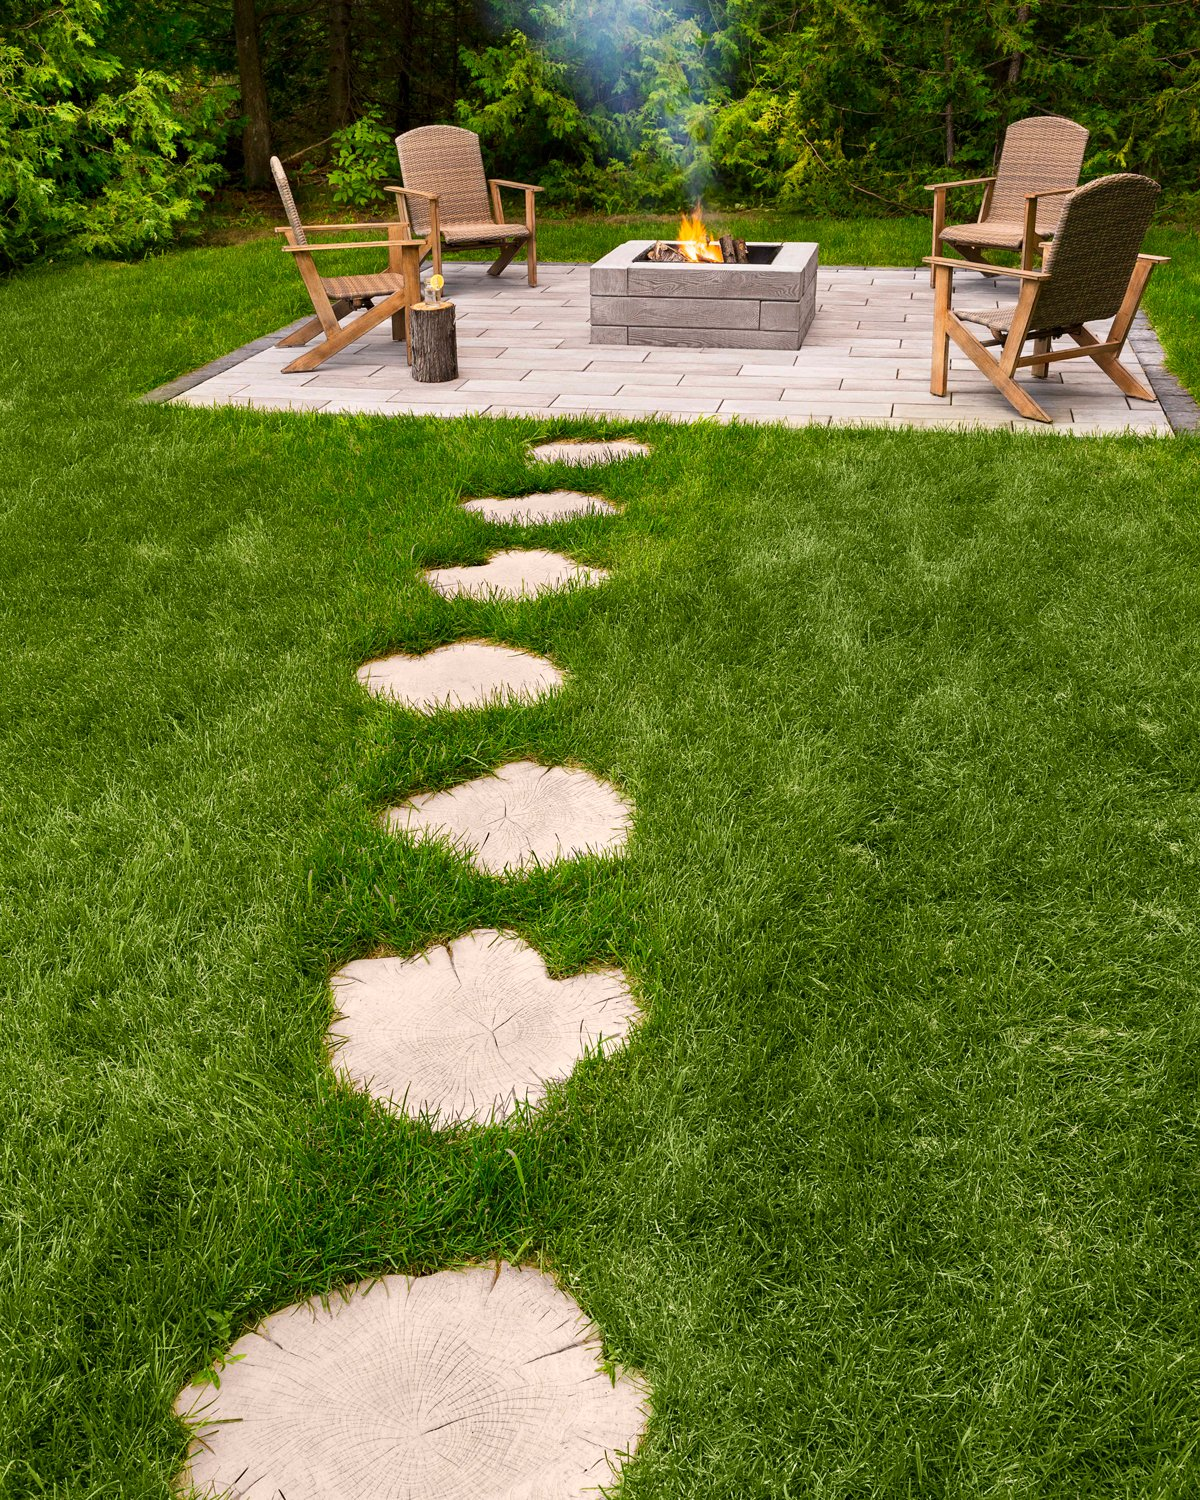 Our wood look-alike concrete stepping stones